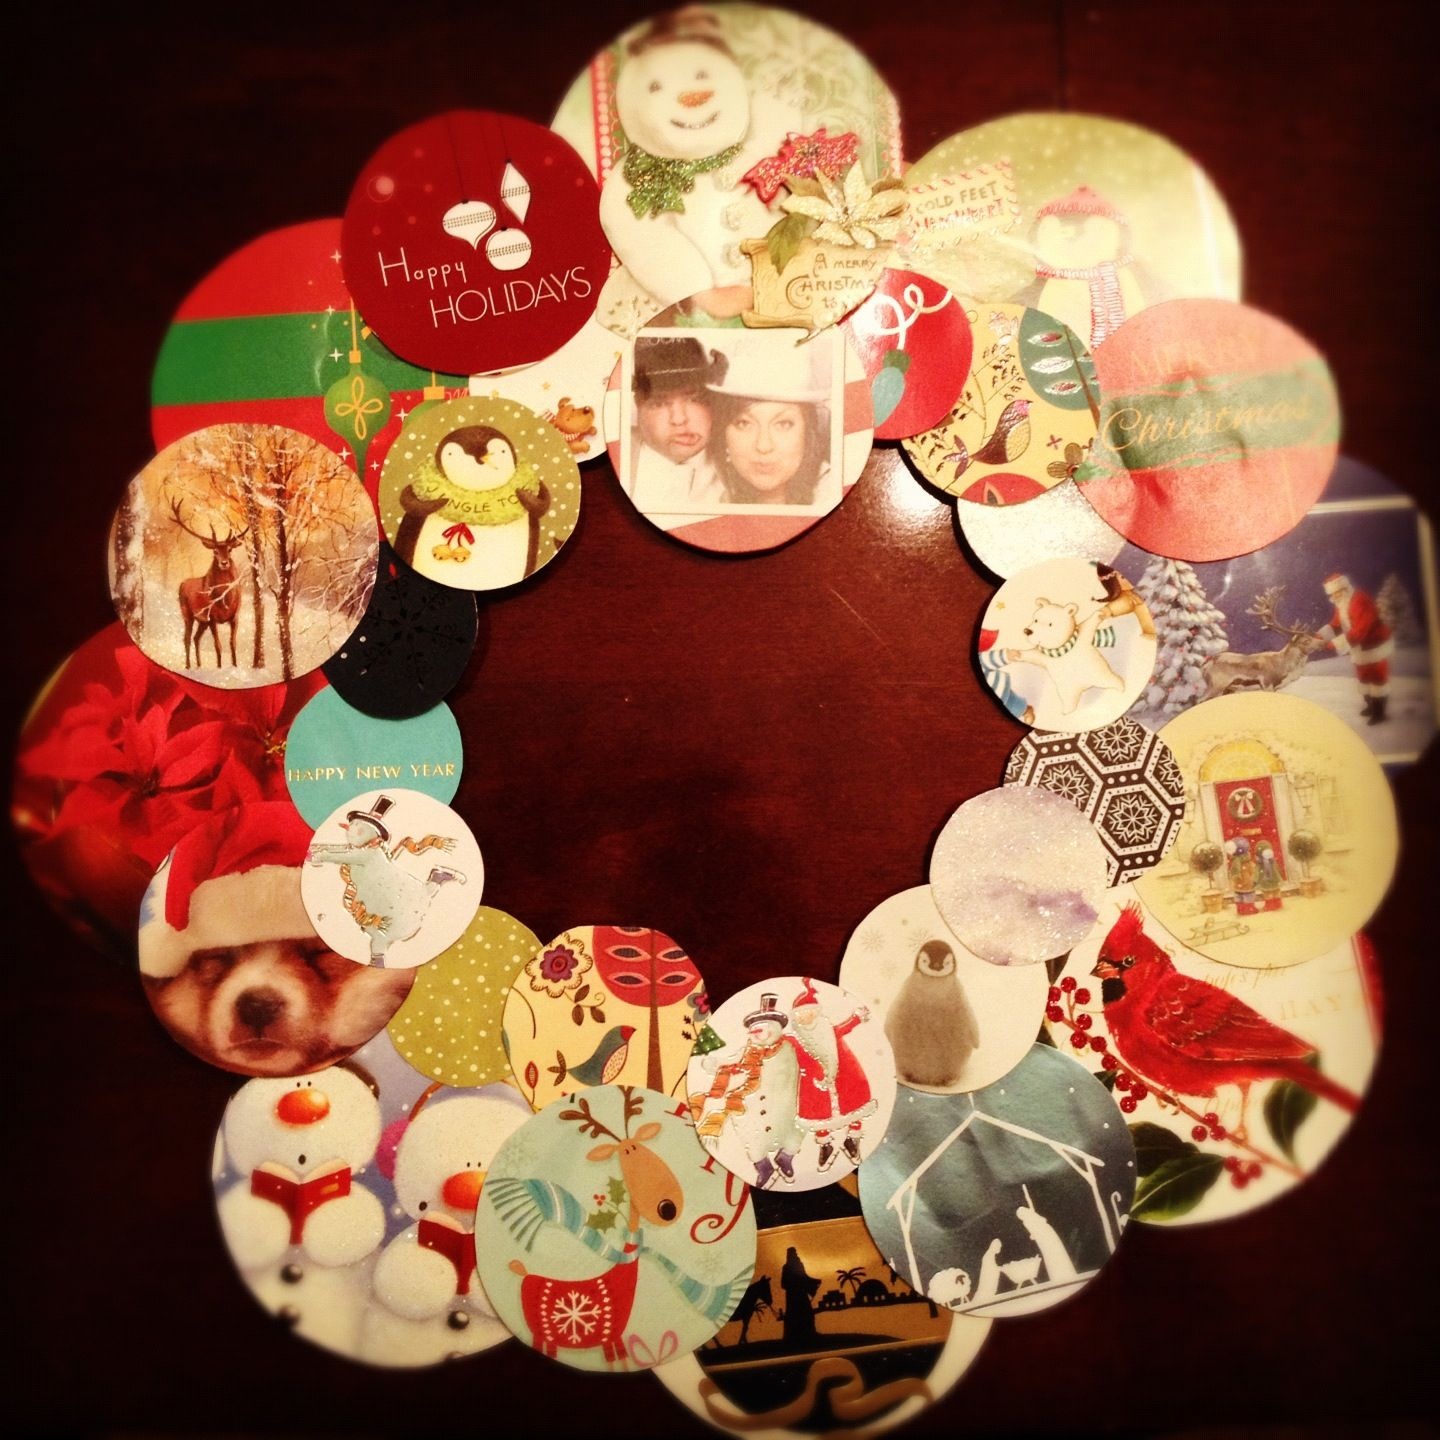 Recycled Old Christmas Cards To Make A Wreath